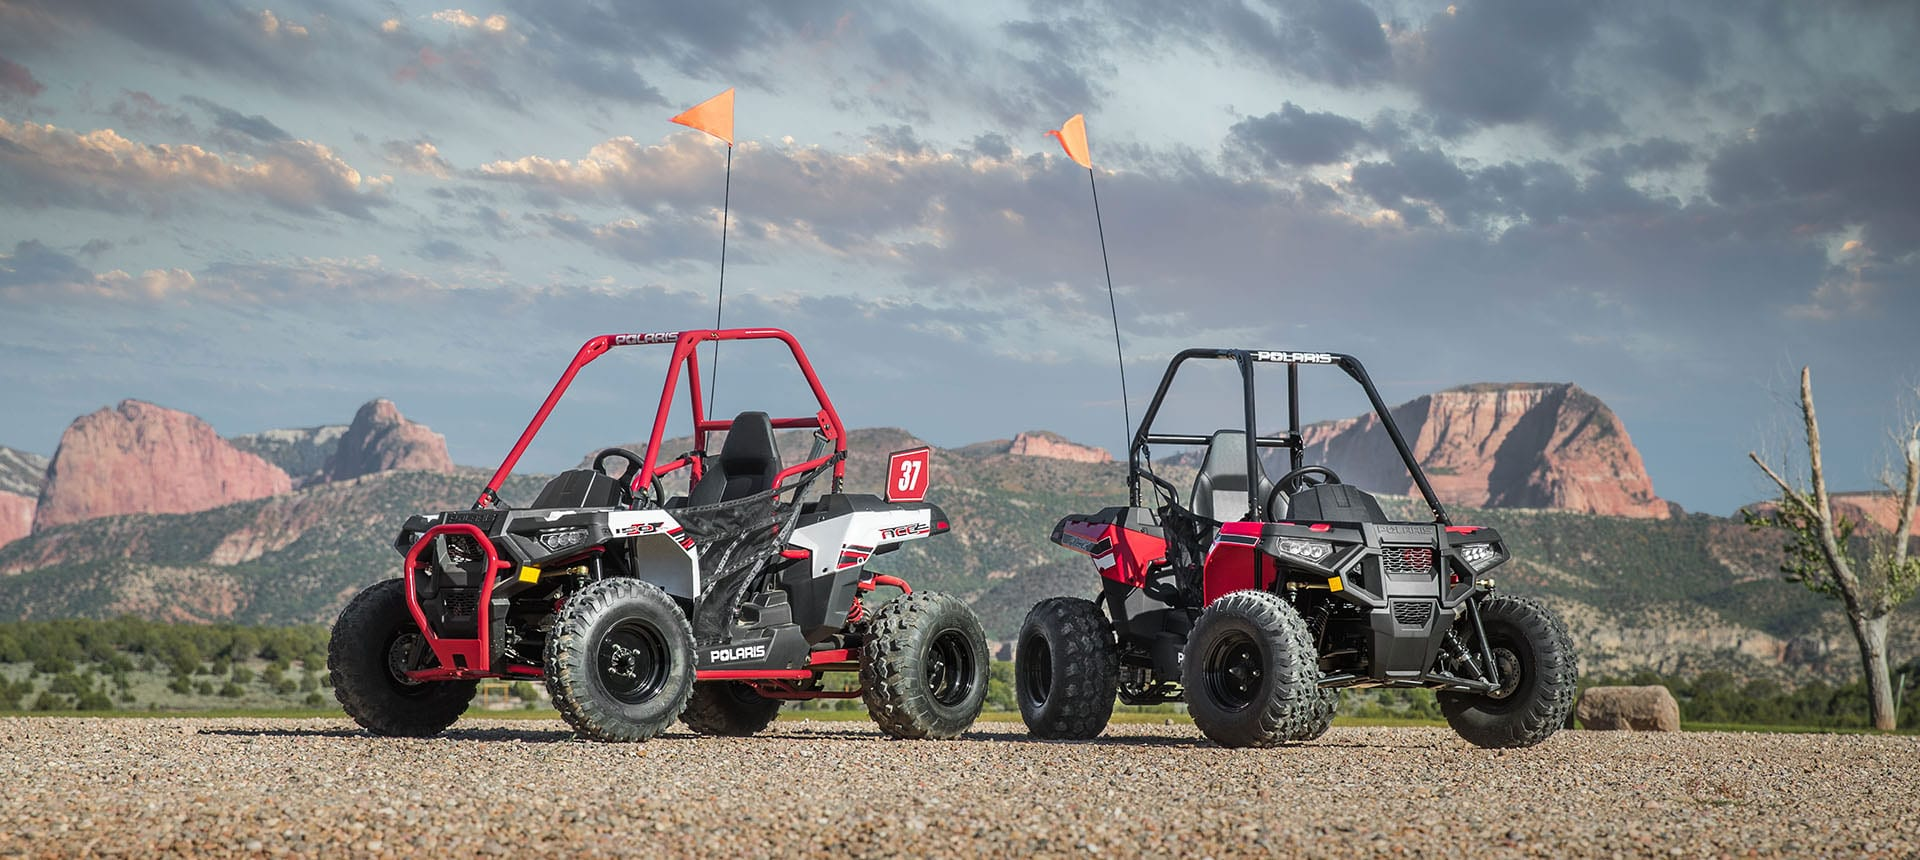 POLARIS ACE 150 EFI